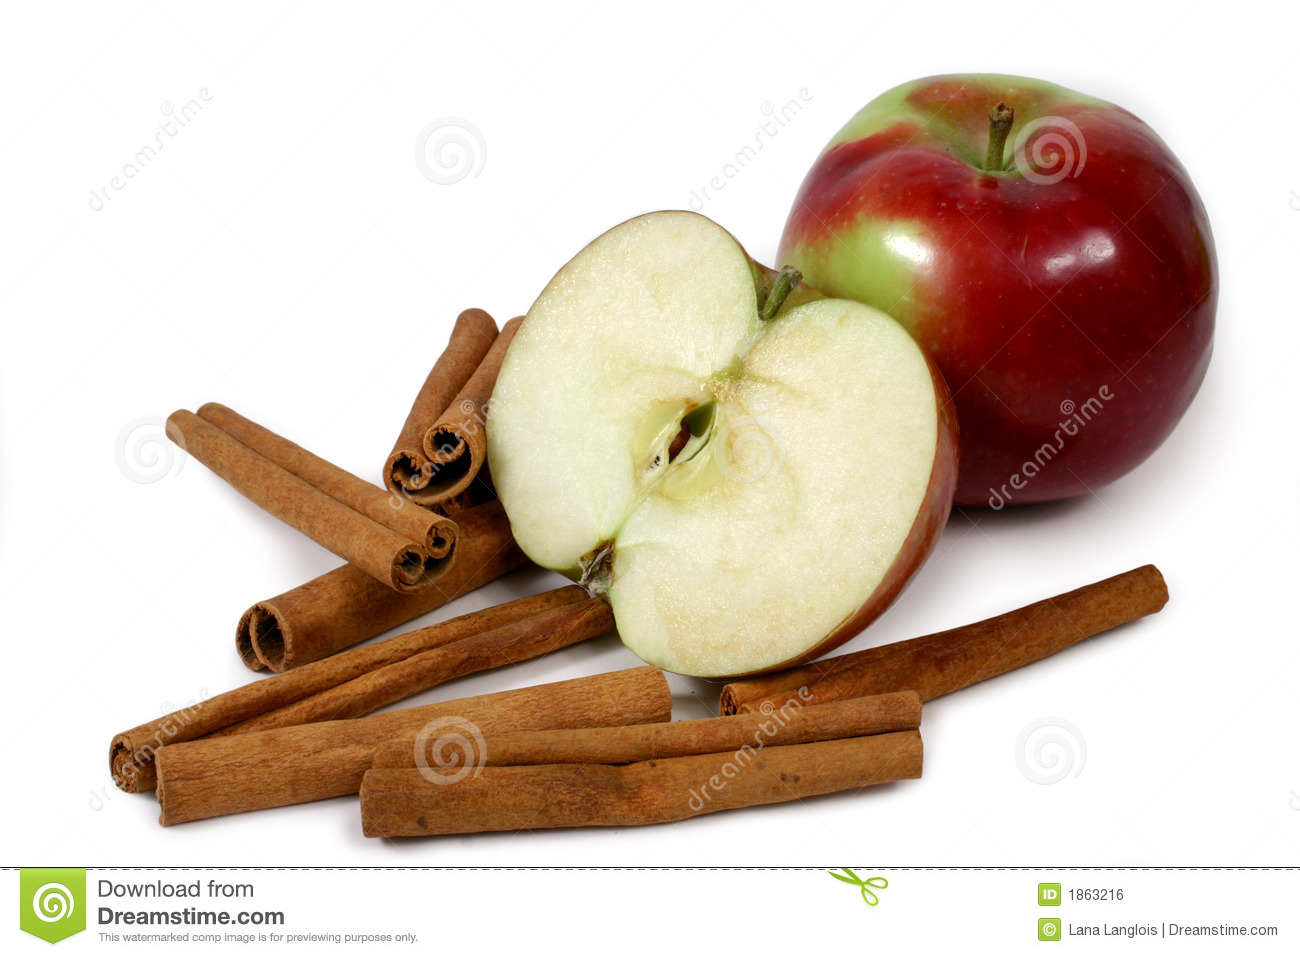 Mcintosh apples and cinnamon